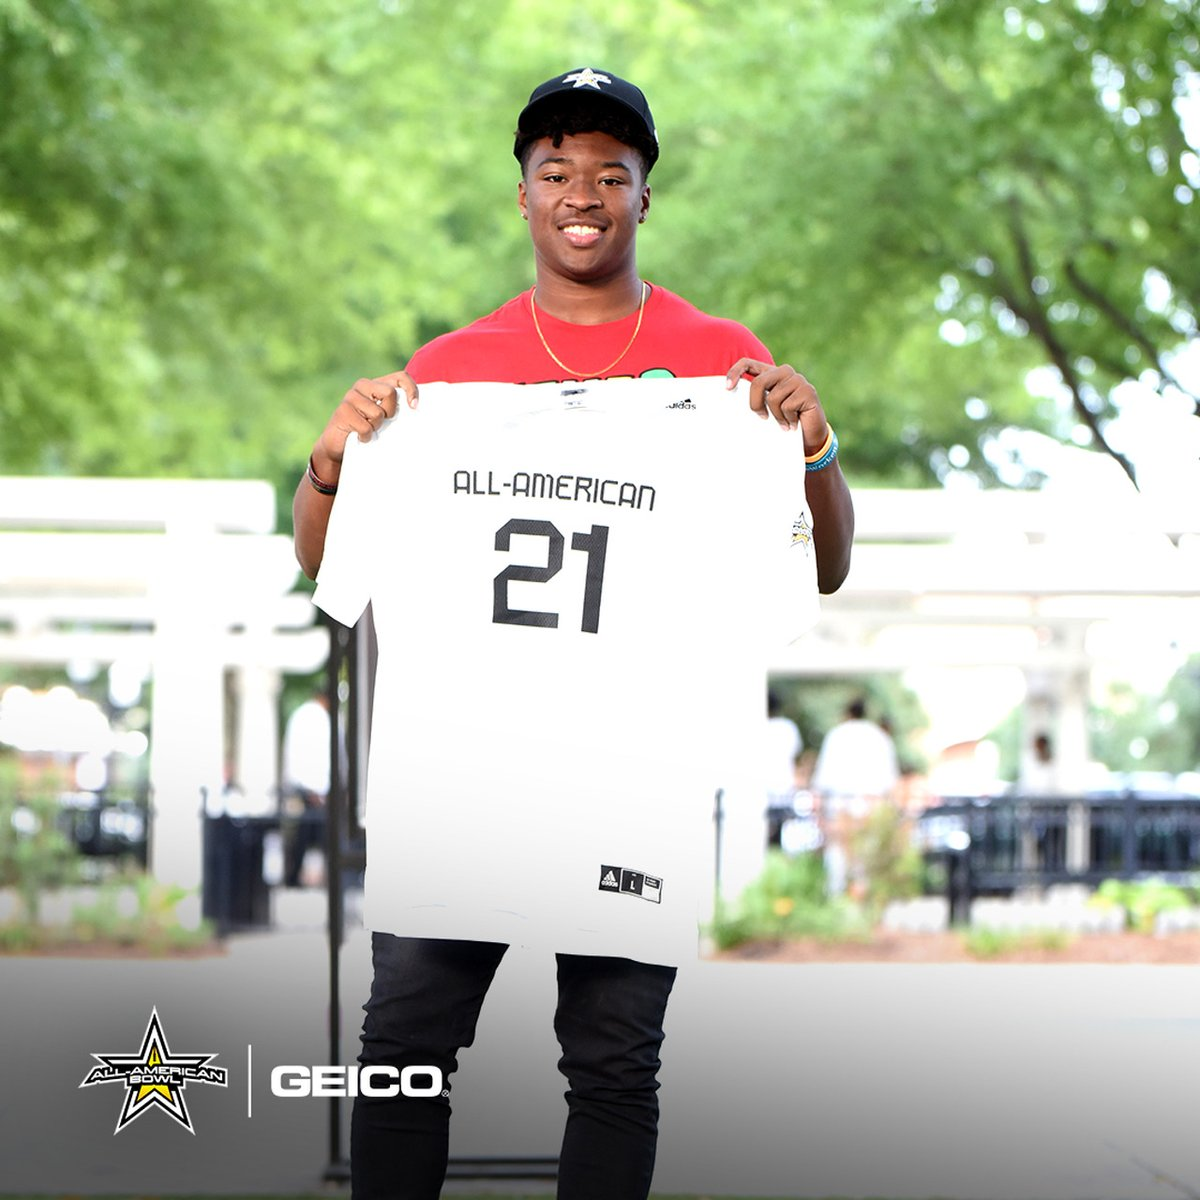 """#OhioState RB commit Evan Pryor will forever go down as an @AABonNBC. Received his jersey this week. """"I know some of the best players who played the sport to this day have played in it and it's a prestigious award to be invited."""" 247sports.com/Article/Ohio-S…"""